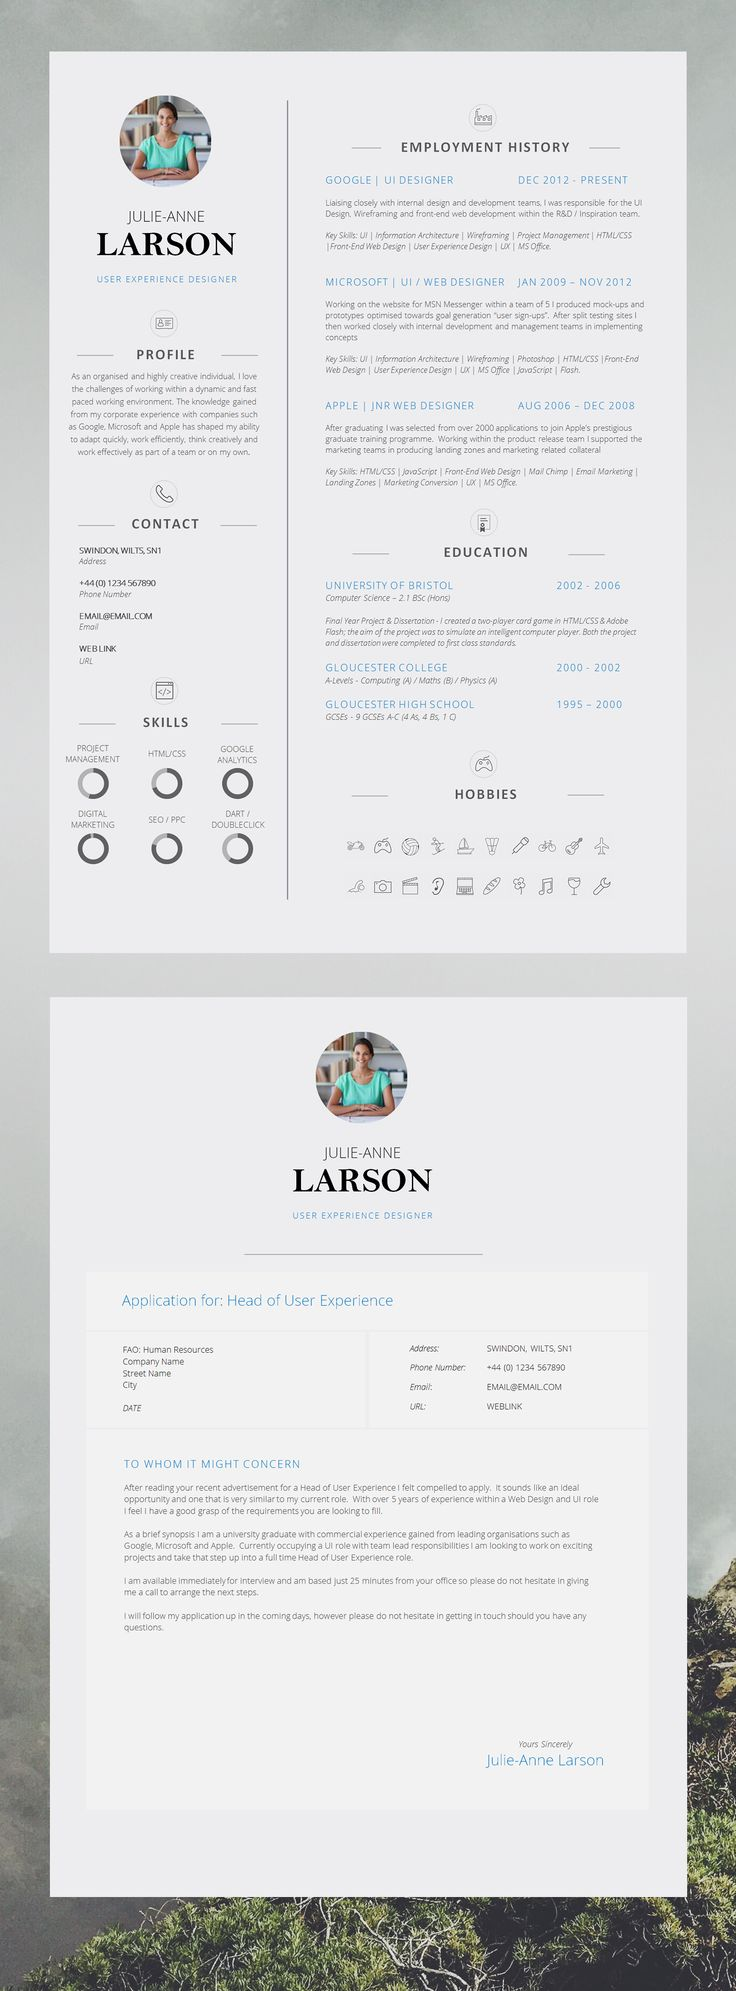 best ideas about resume layout resume design resume template cv template cover letter application advice ms word resume design cv design instant belgravia